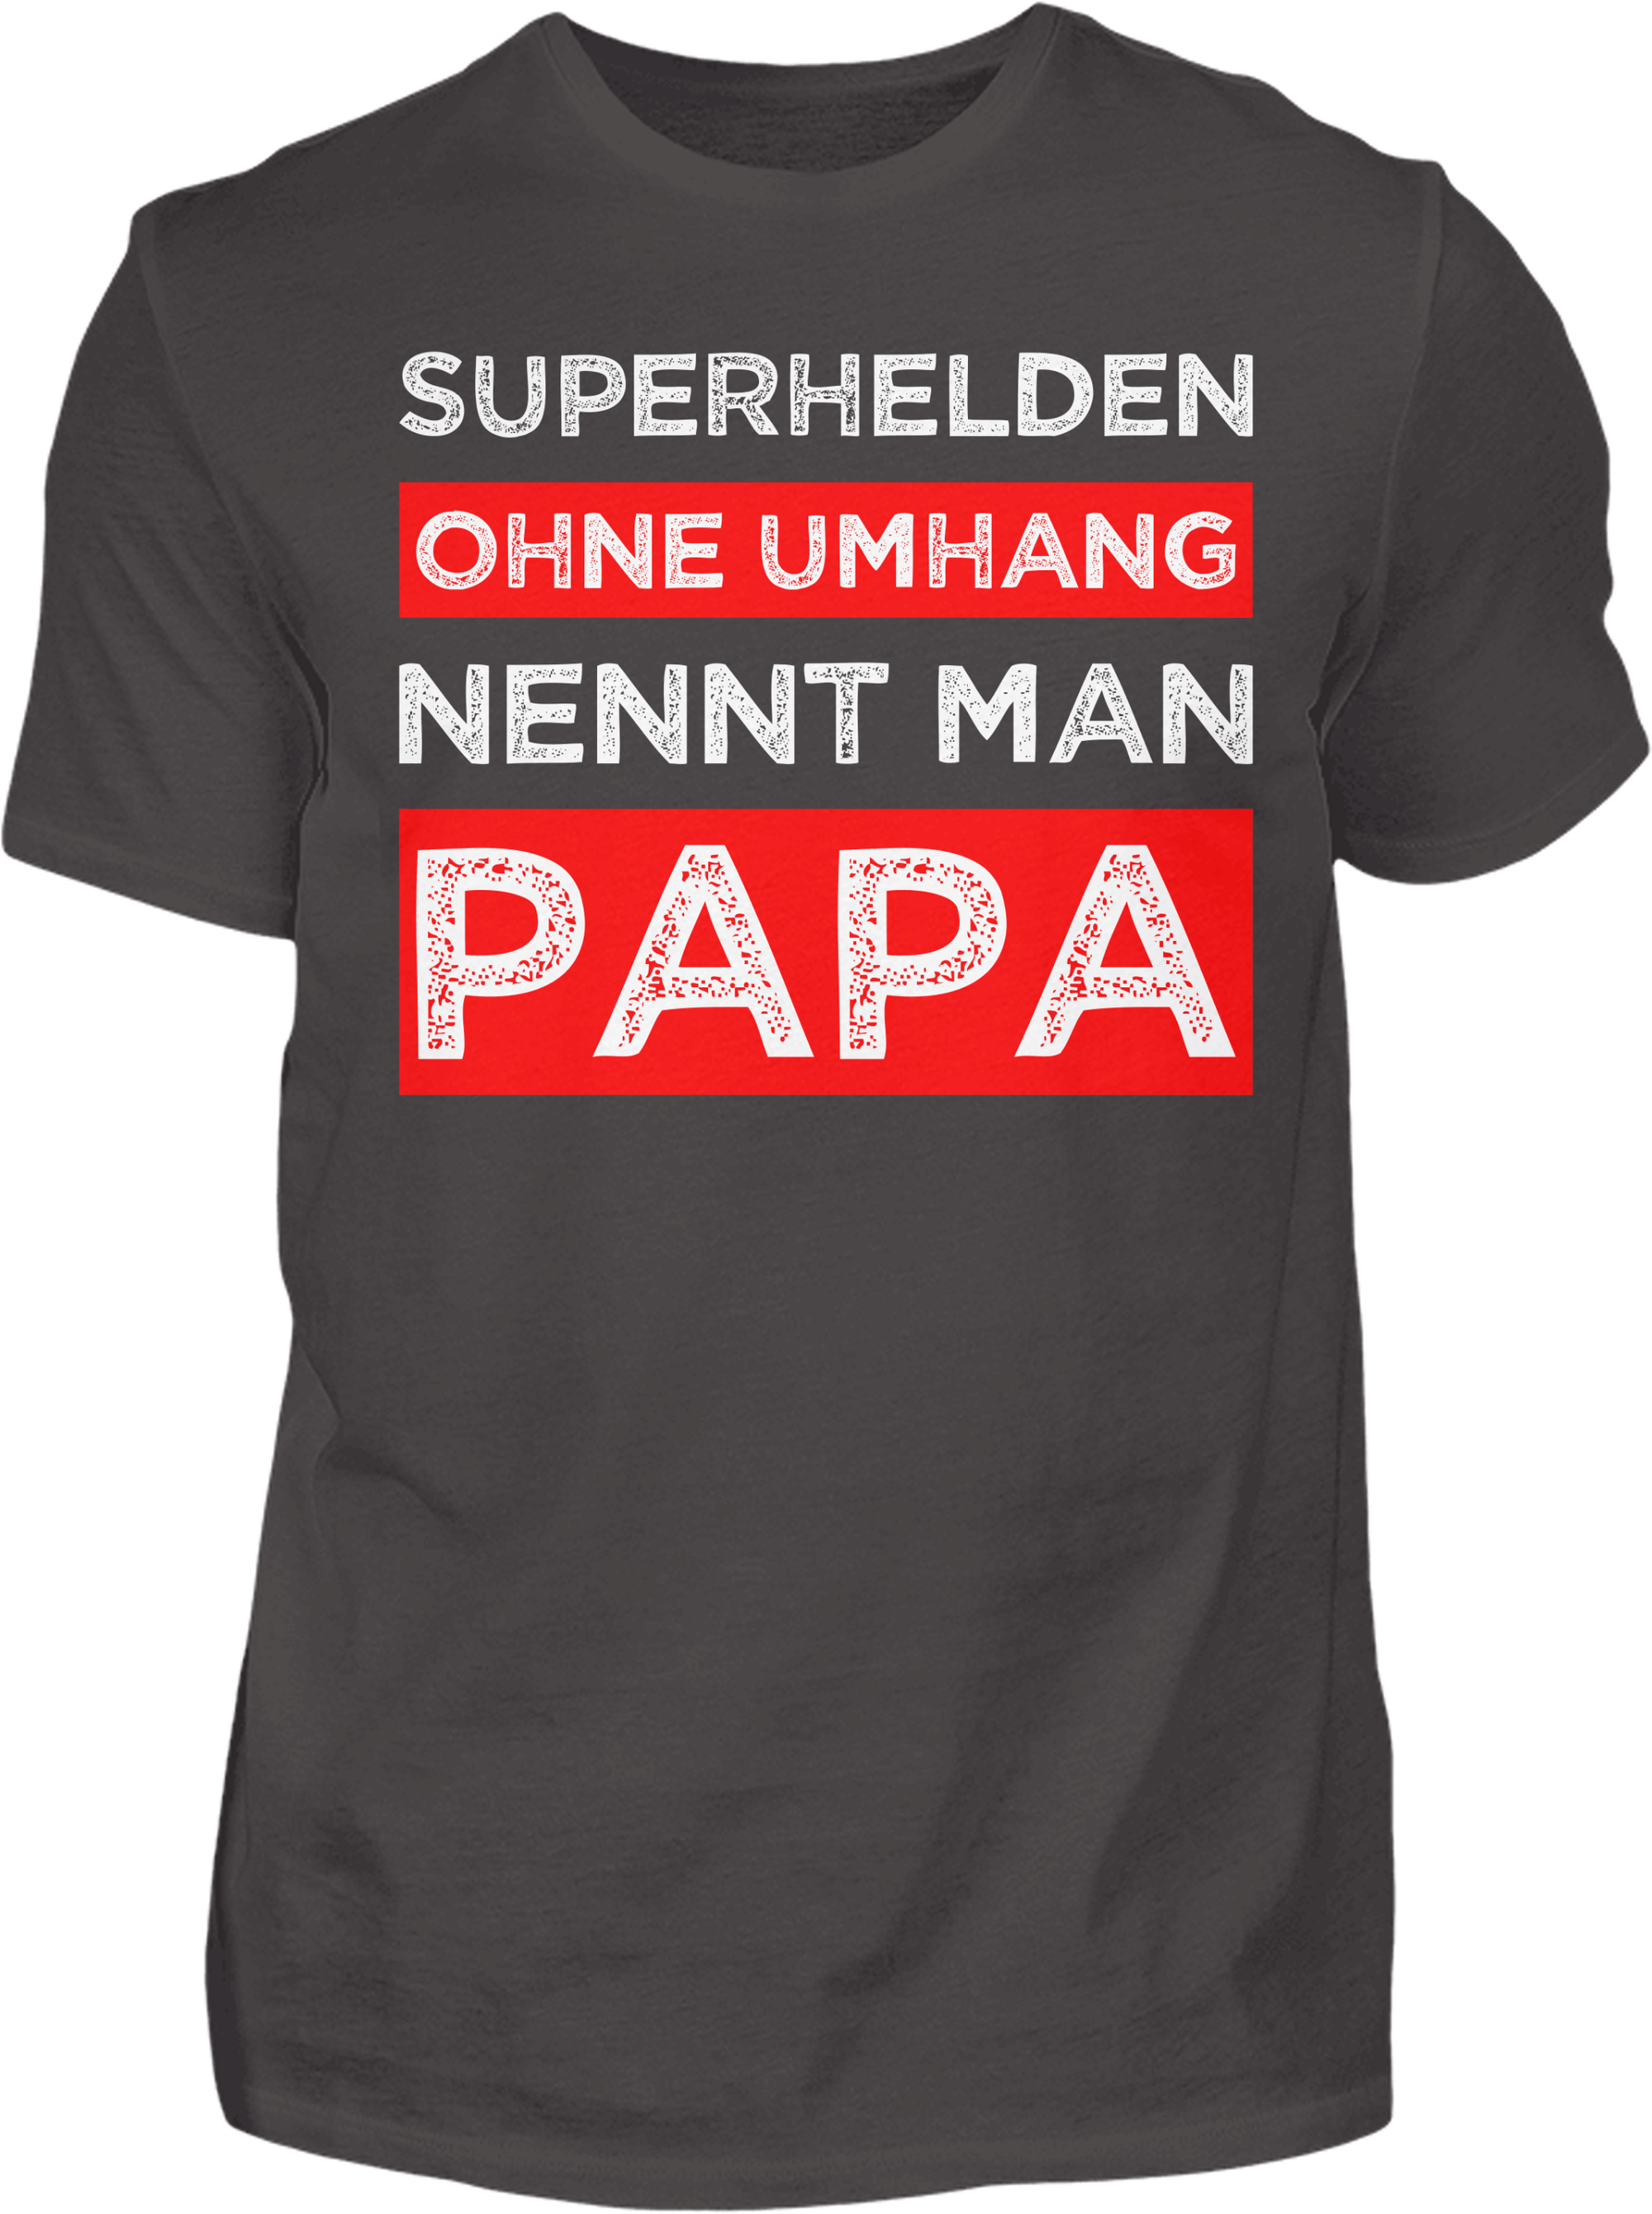 Superhelden ohne Umhang T-Shirt - Kreisligahelden.de